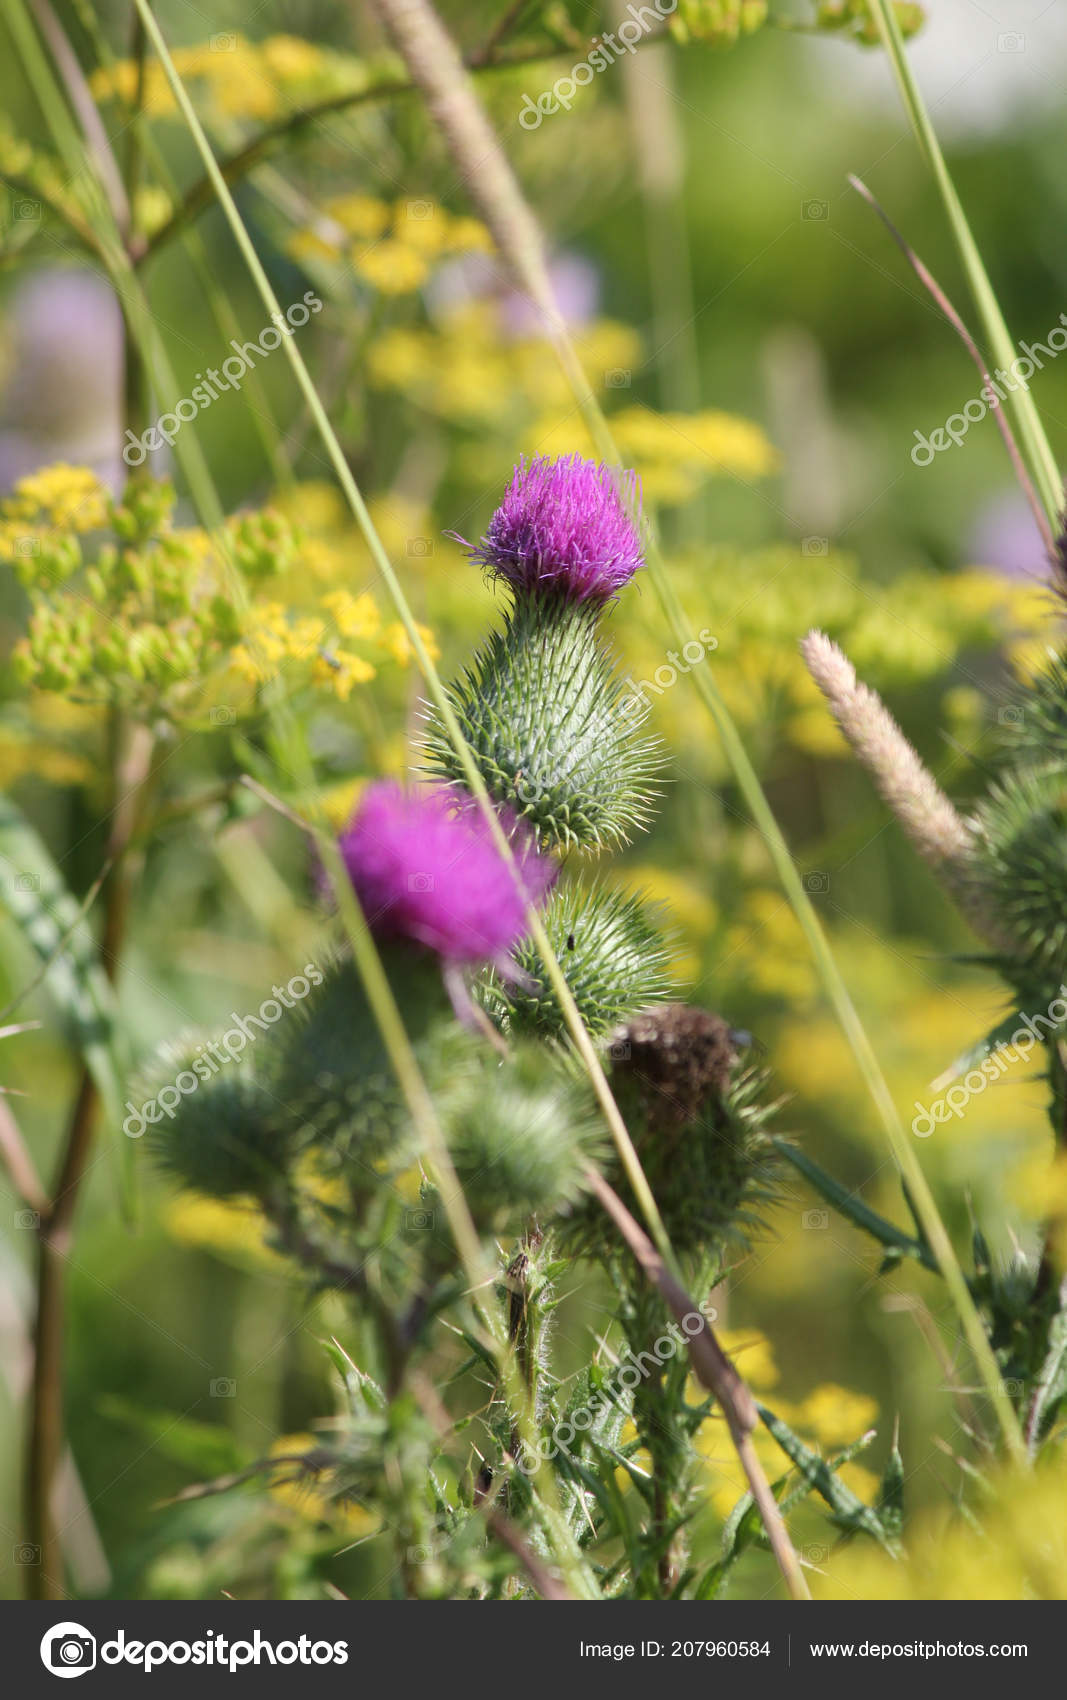 Bull thistle cirsium vulgare prickly weed pretty purple flower top bull thistle cirsium vulgare prickly weed pretty purple flower top stock photo mightylinksfo